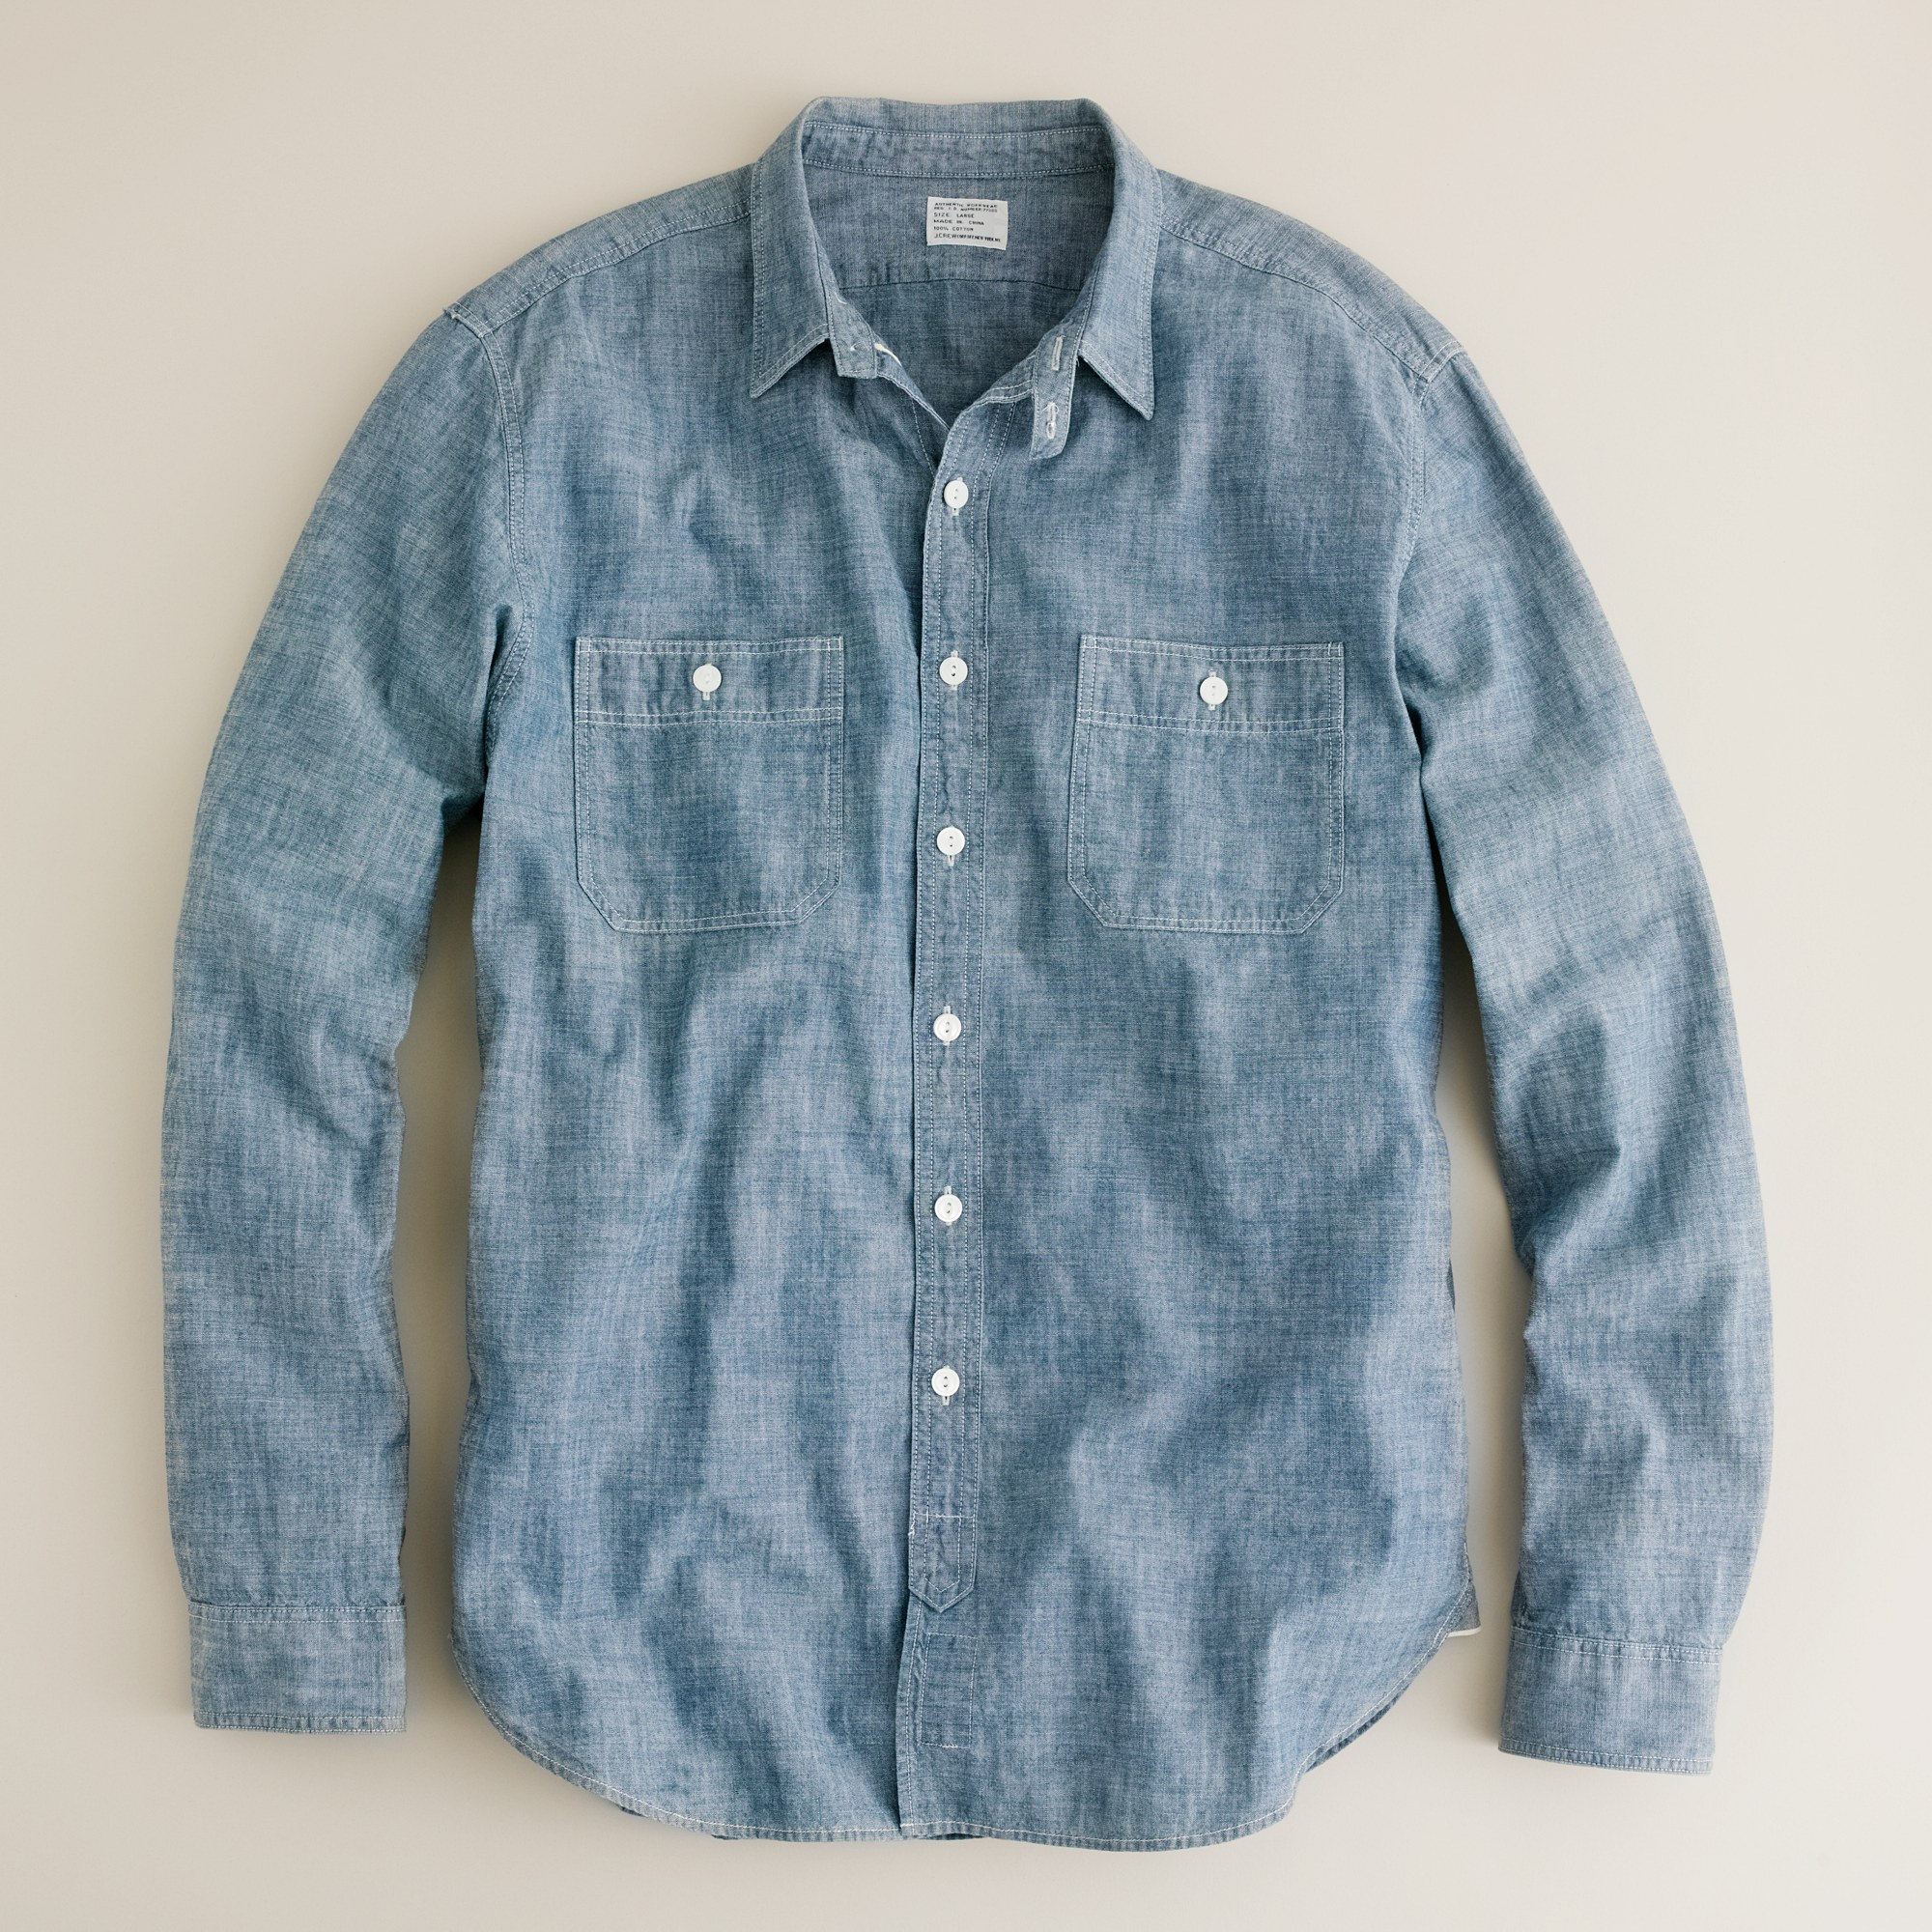 Casual Shirts. Brushed Button-Down Shirts. For those that appreciate comfortable classics, these button-downs have been brushed to an extra soft finish. Chambray and Denim Shirts. The texture and versatility of denim, in a lighter, more comfortable cotton fabric. Available in Slim, Standard, Short, Regular, and Long Lengths.